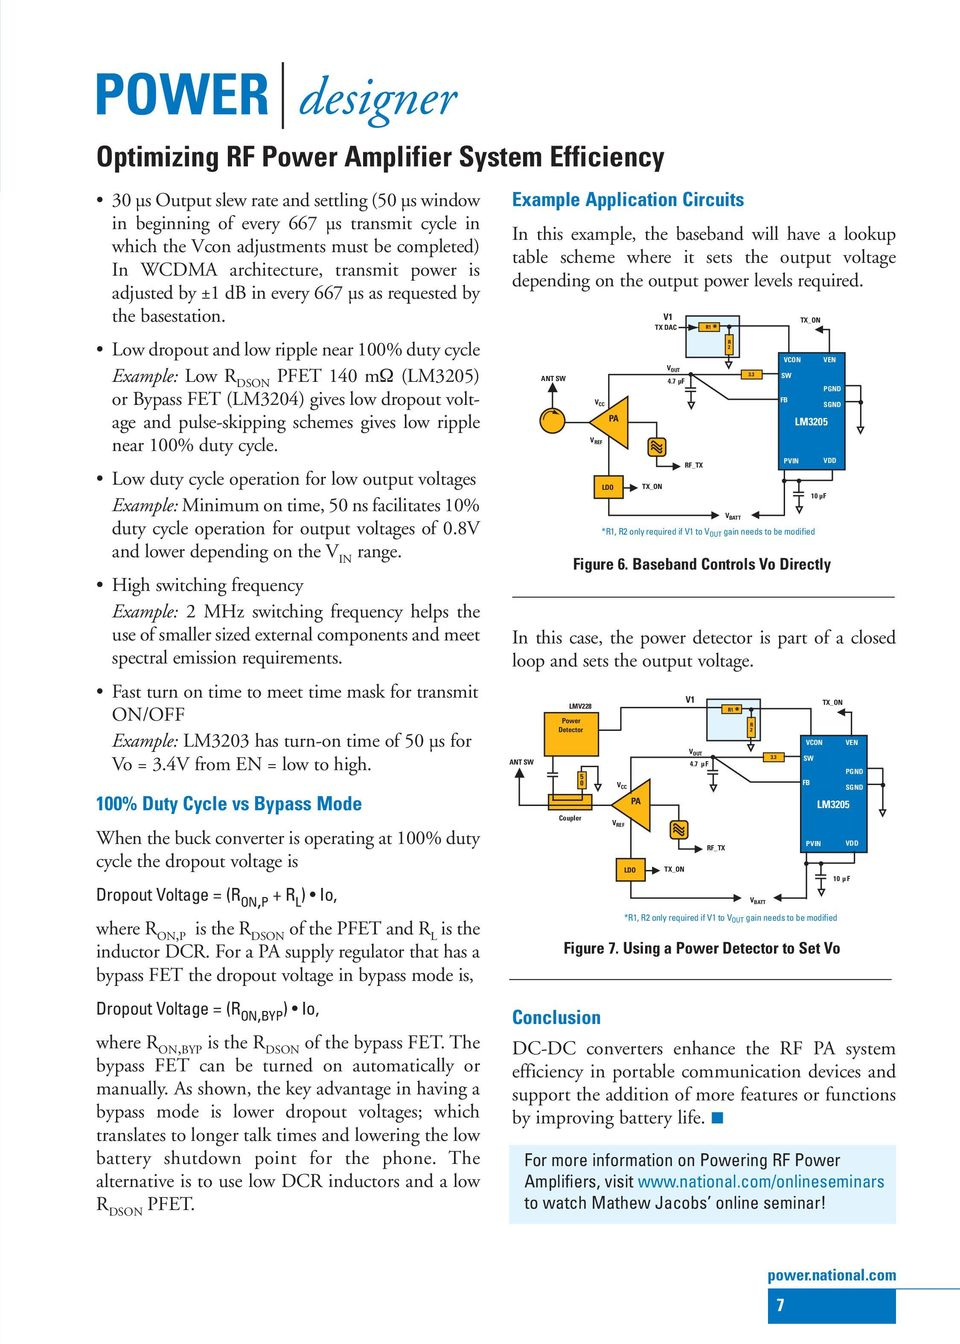 Lm3203lm3204lm3205 Optimizing Rf Power Amplifier System Efficiency National Lm386 Audio Datasheet For Battery Operation Low Dropout And Ripple Near 100 Duty Cycle Example R Dson Pfet